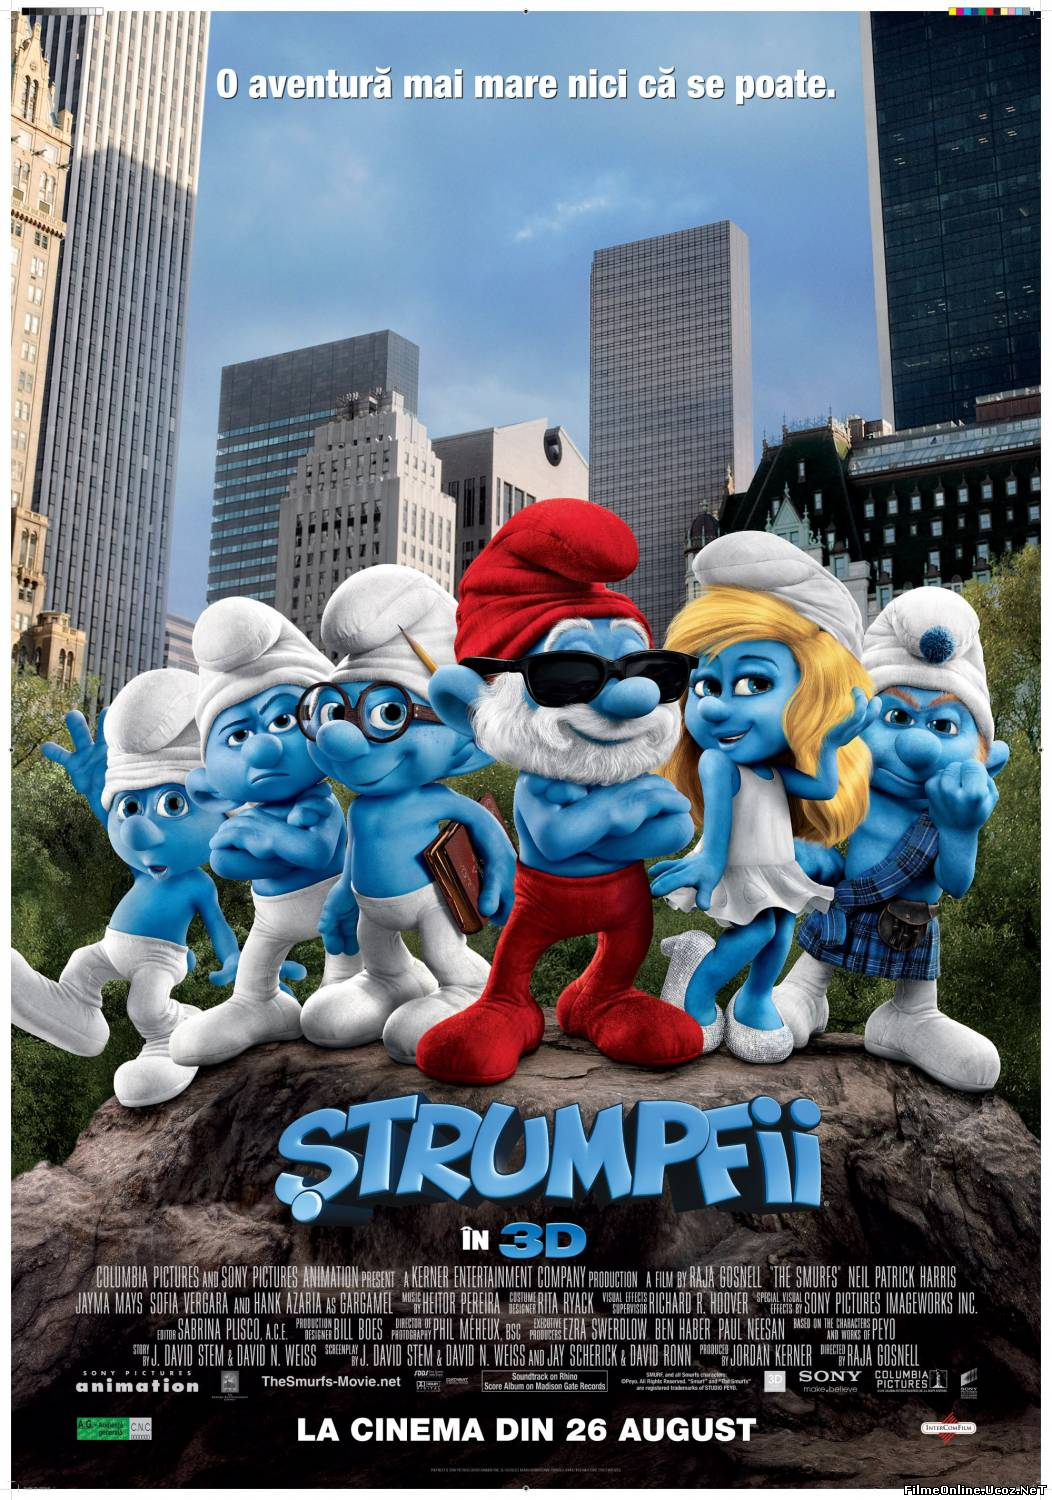 The Smurfs – Strumpfii (2011)